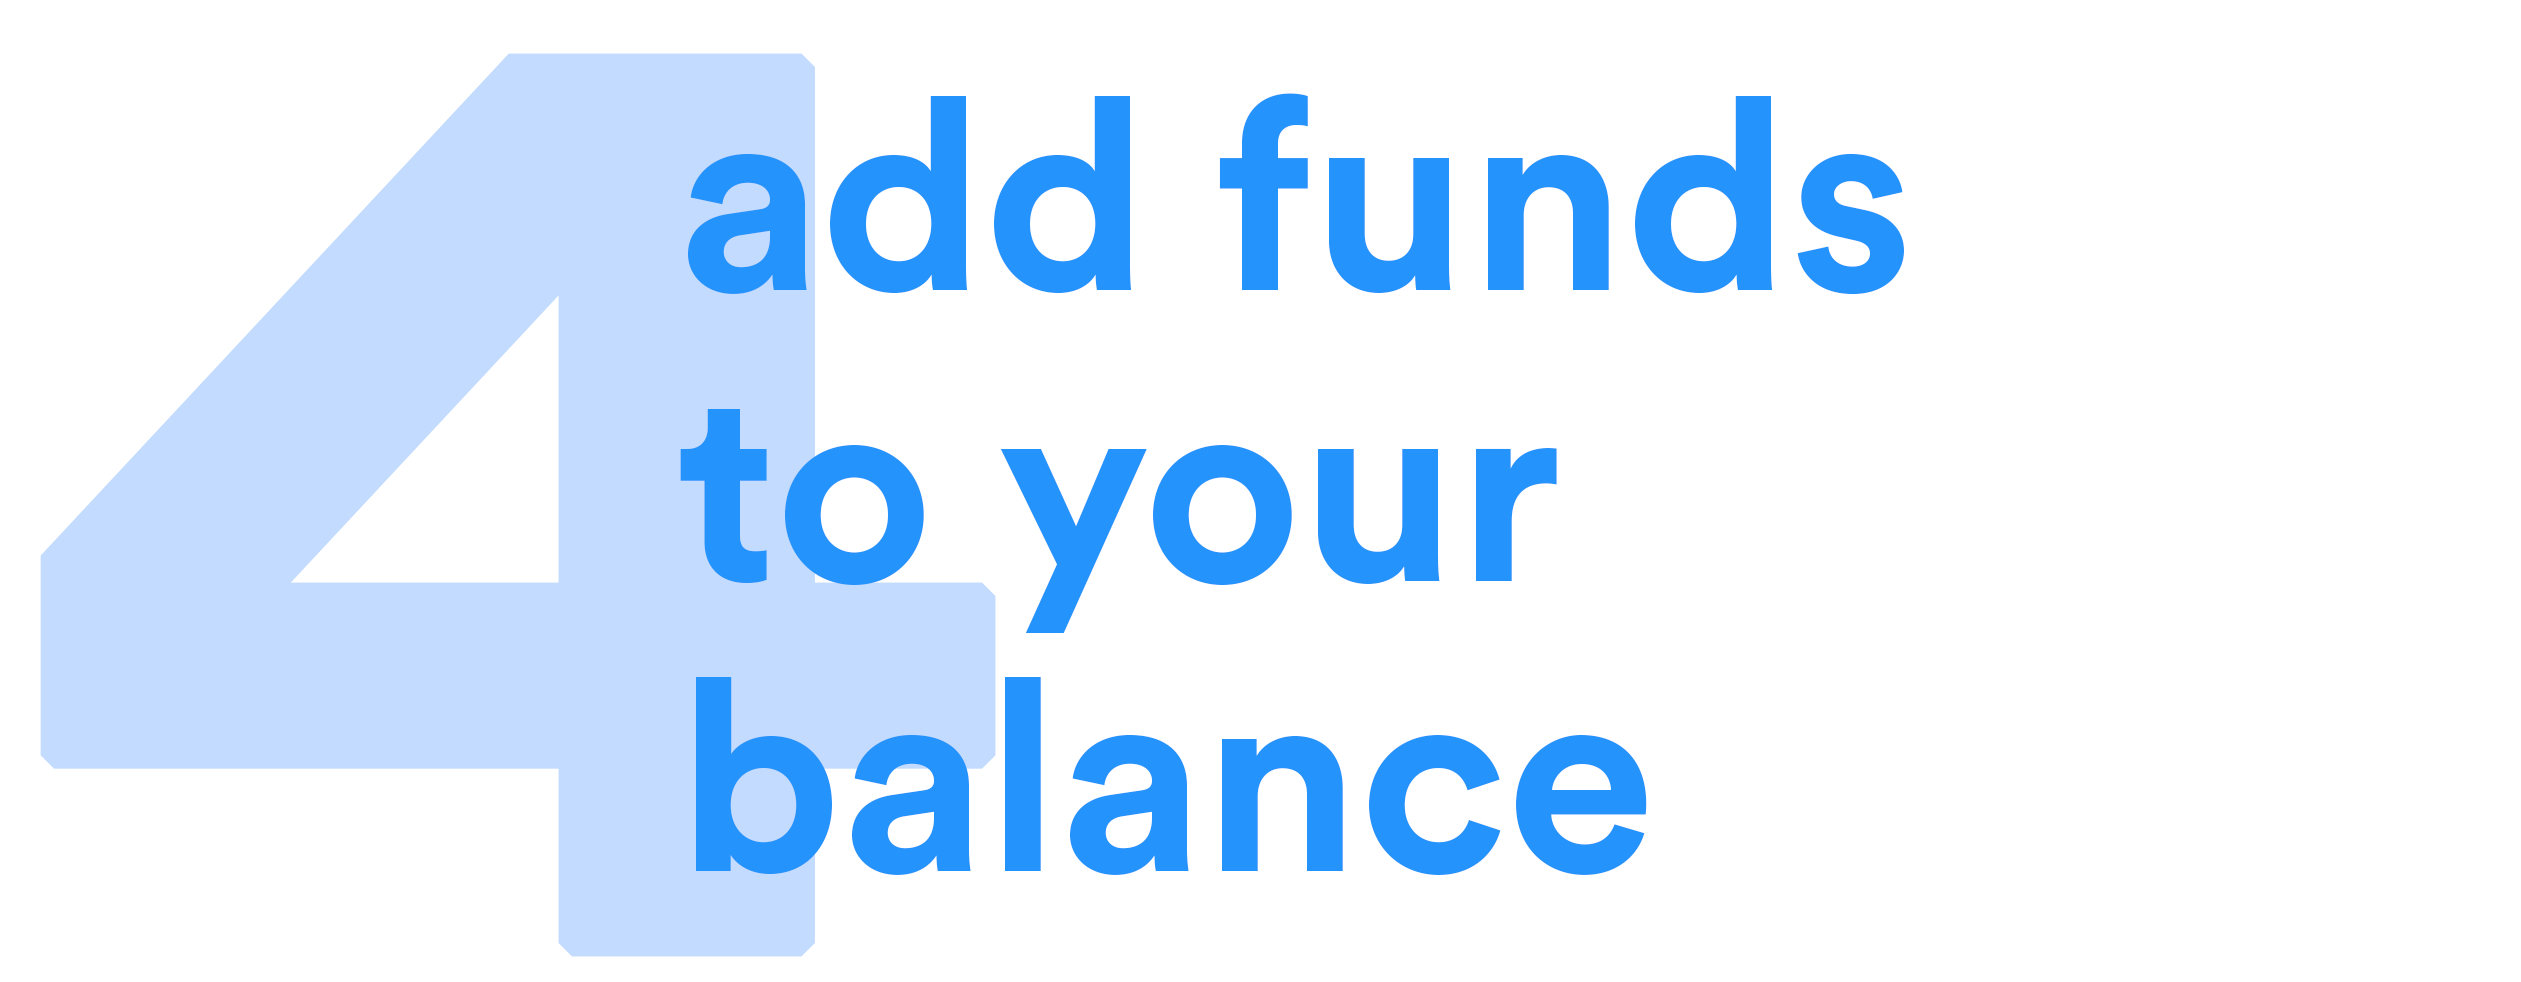 Add funds to your balance